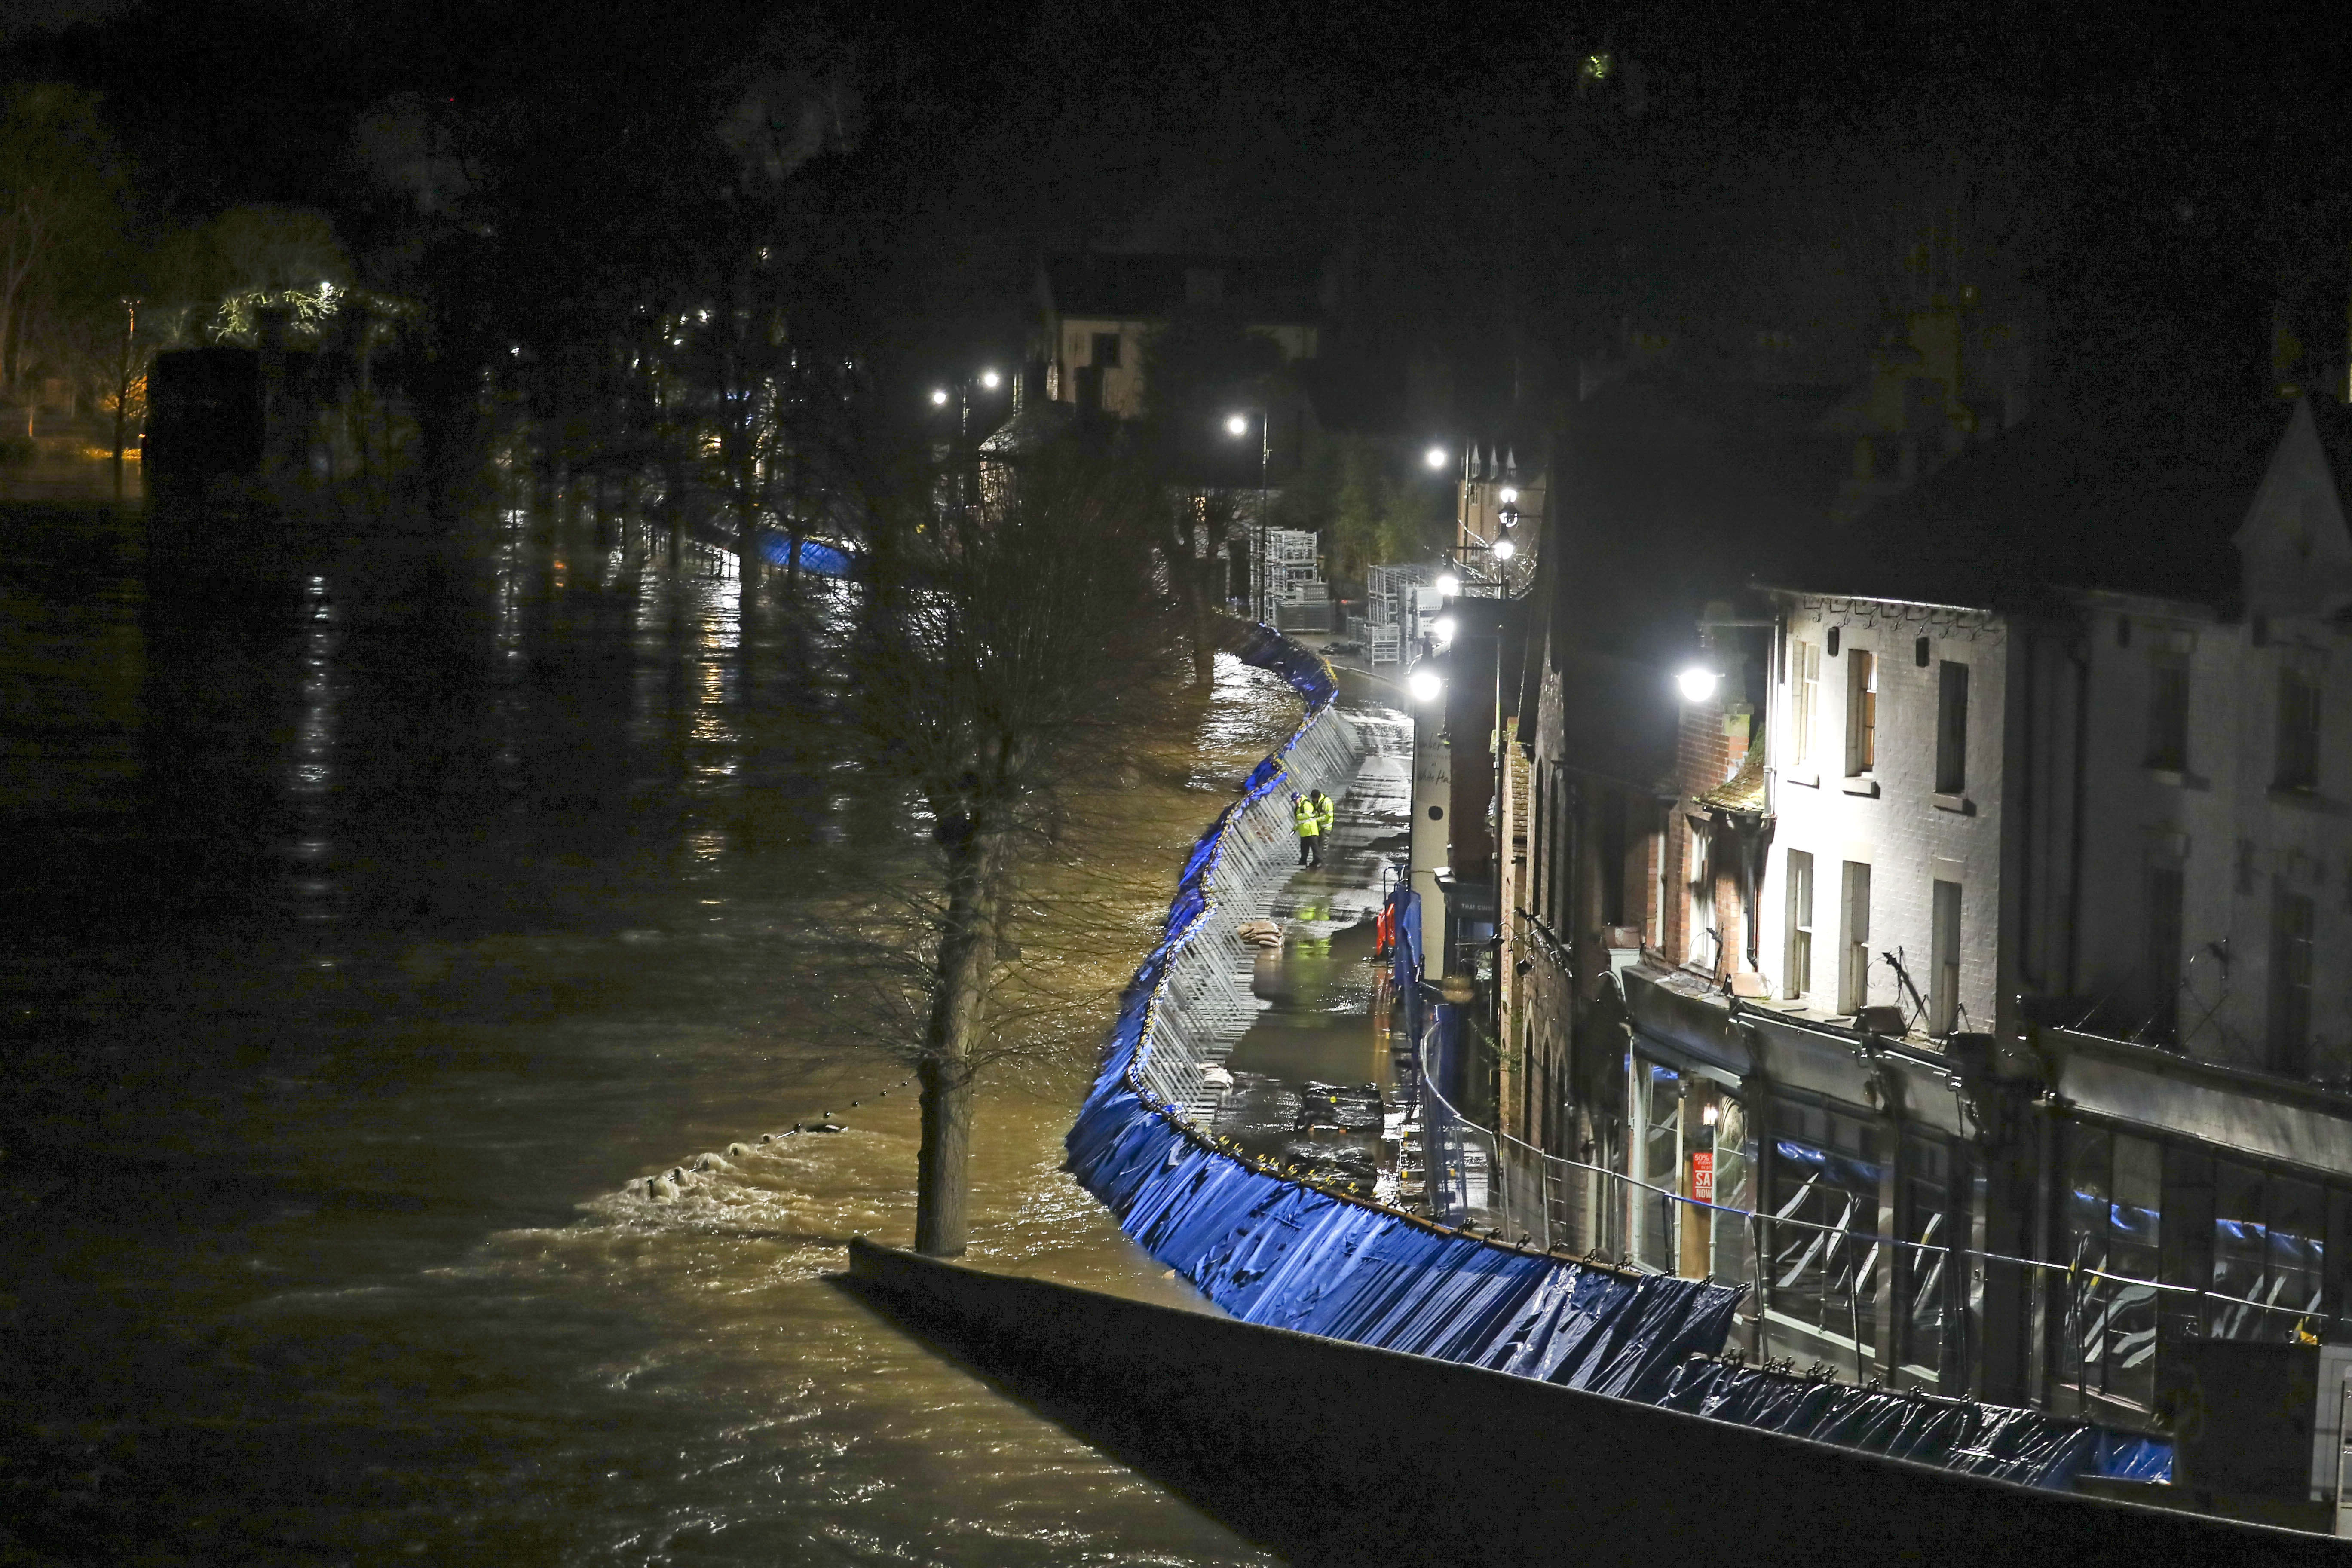 Temporary flood barriers hold back the river Severn in Ironbridge, Shropshire, in the aftermath of Storm Dennis. (Photo by Steve Parsons/PA Images via Getty Images)